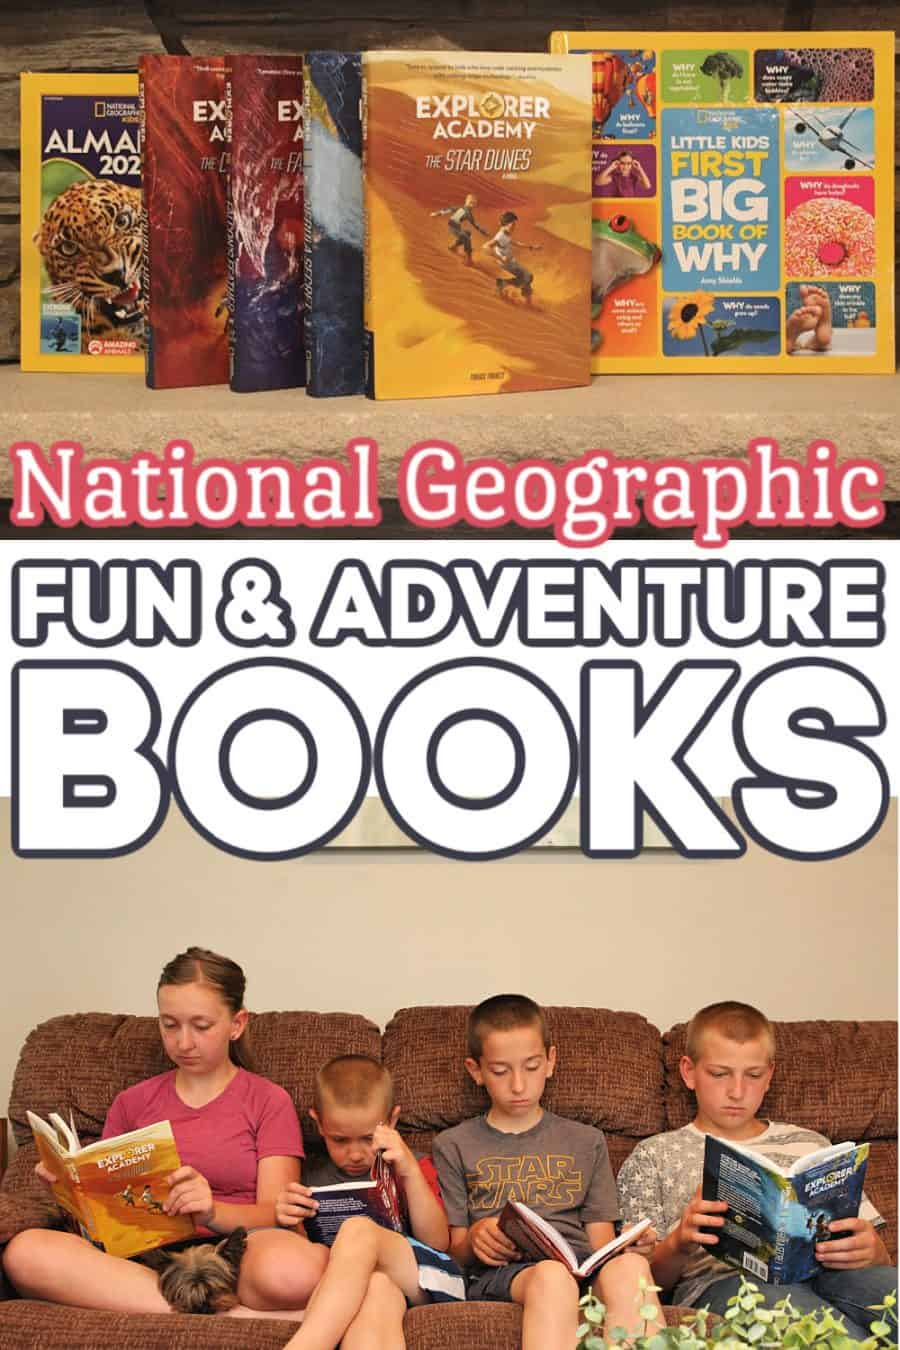 Books and kids - Awesome Adventure Chapter Books For Kids + More Nat Geo Must Haves!